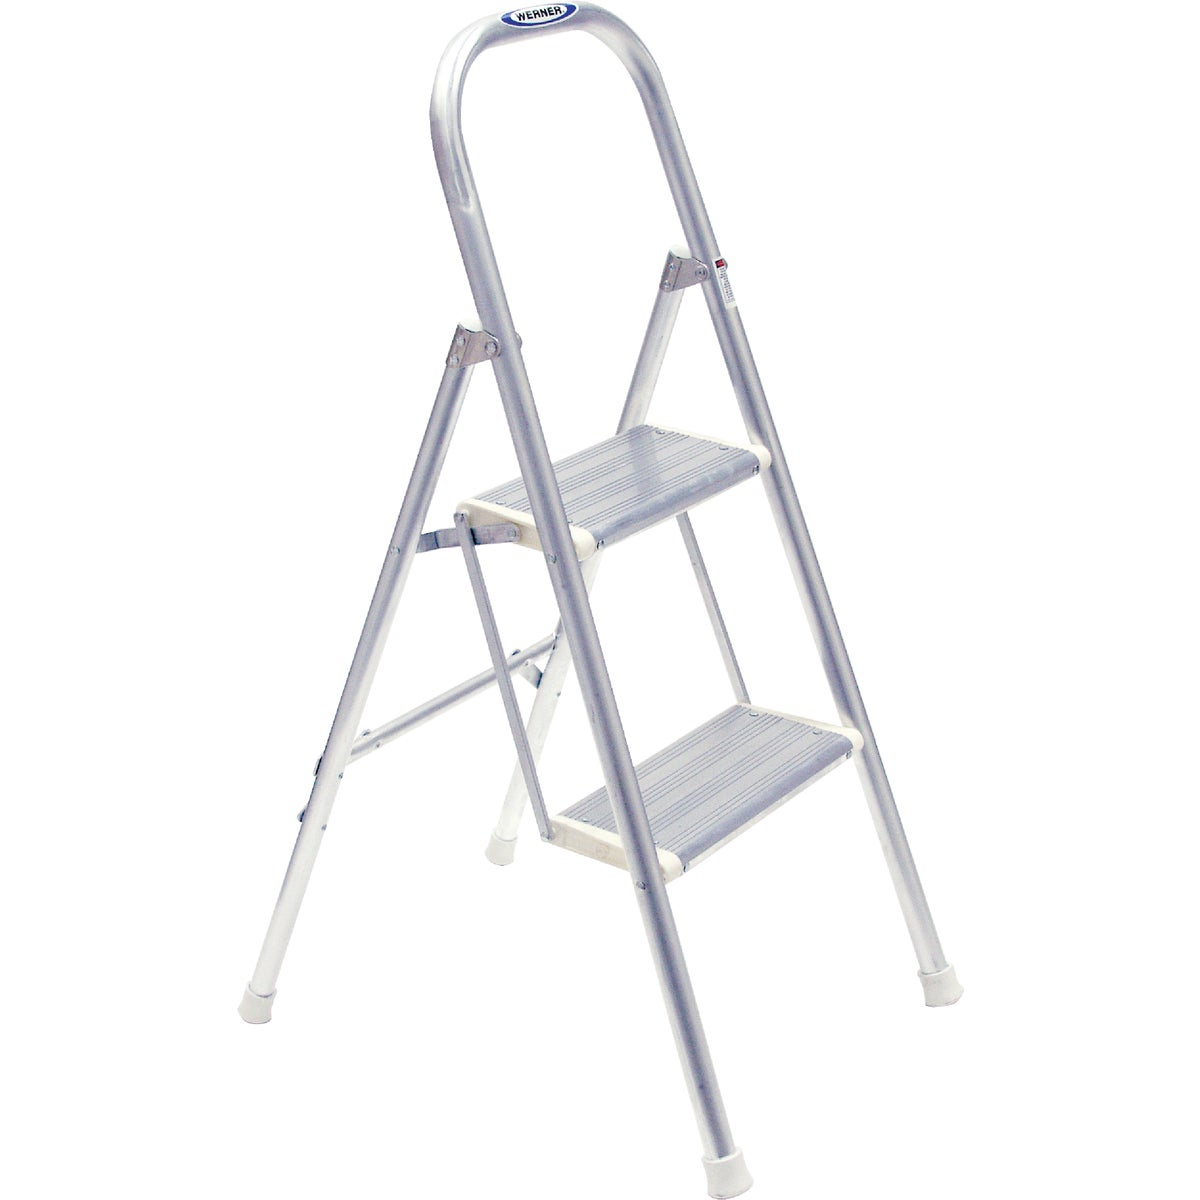 T-3 3.5' ALUM STEPLADDER - 244 by Werner Ladder